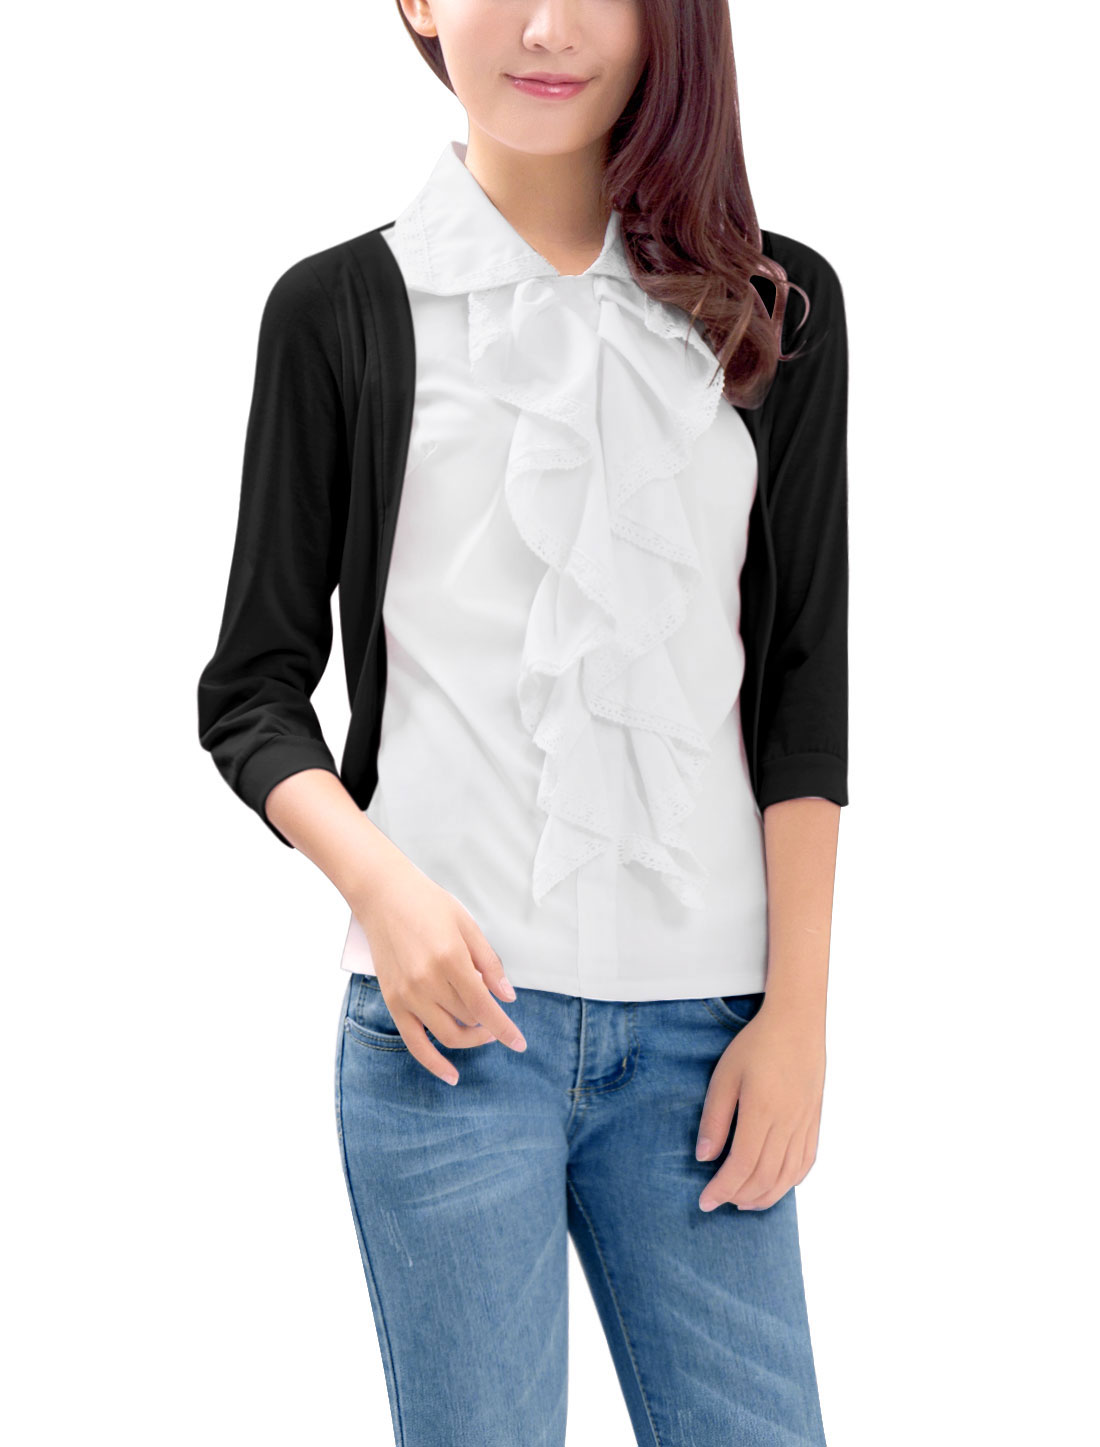 Women Newly Point Collar 3/4 Sleeve Ruffled Front Black White Blouse XL